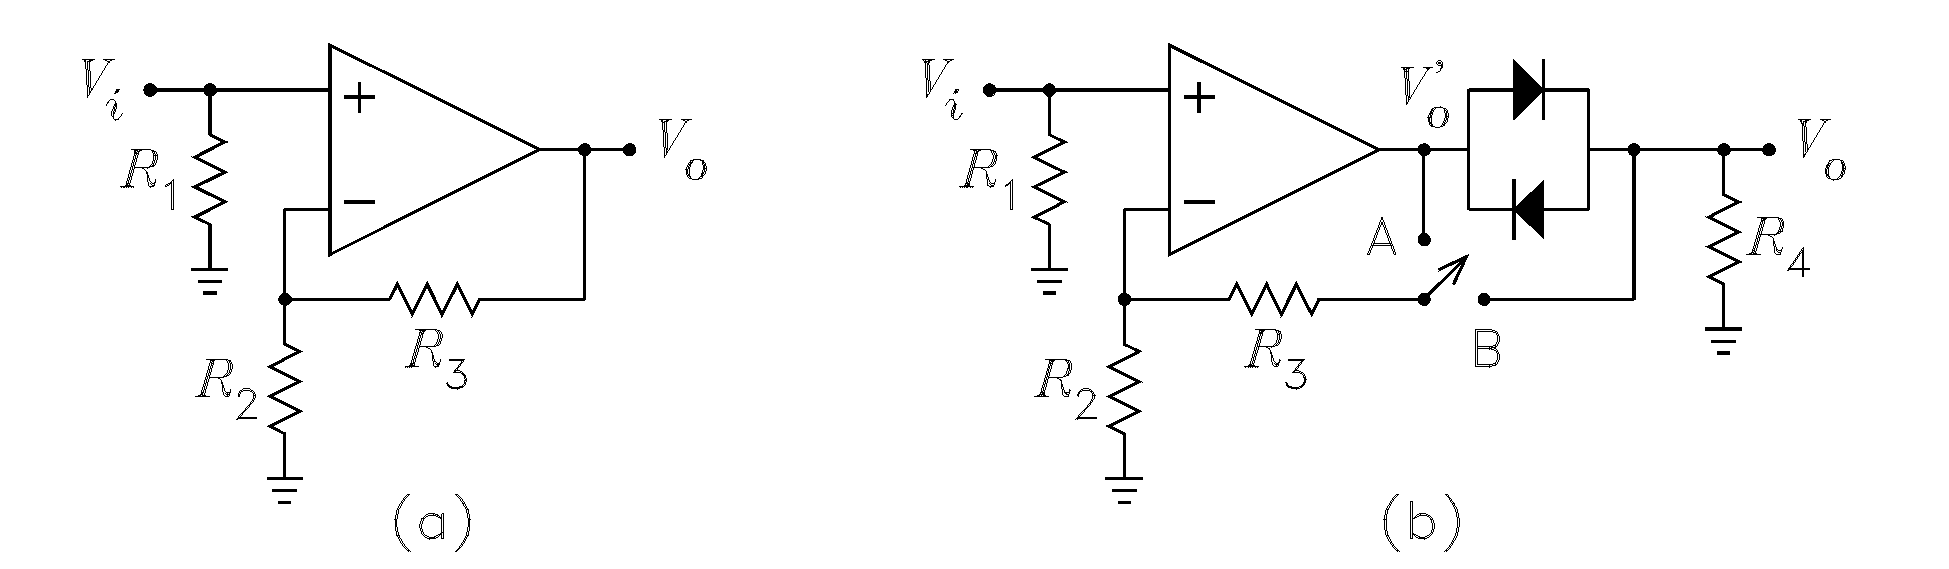 Ece 4435 Operational Amplifier Design Crown Amp Schematic Non Inverting